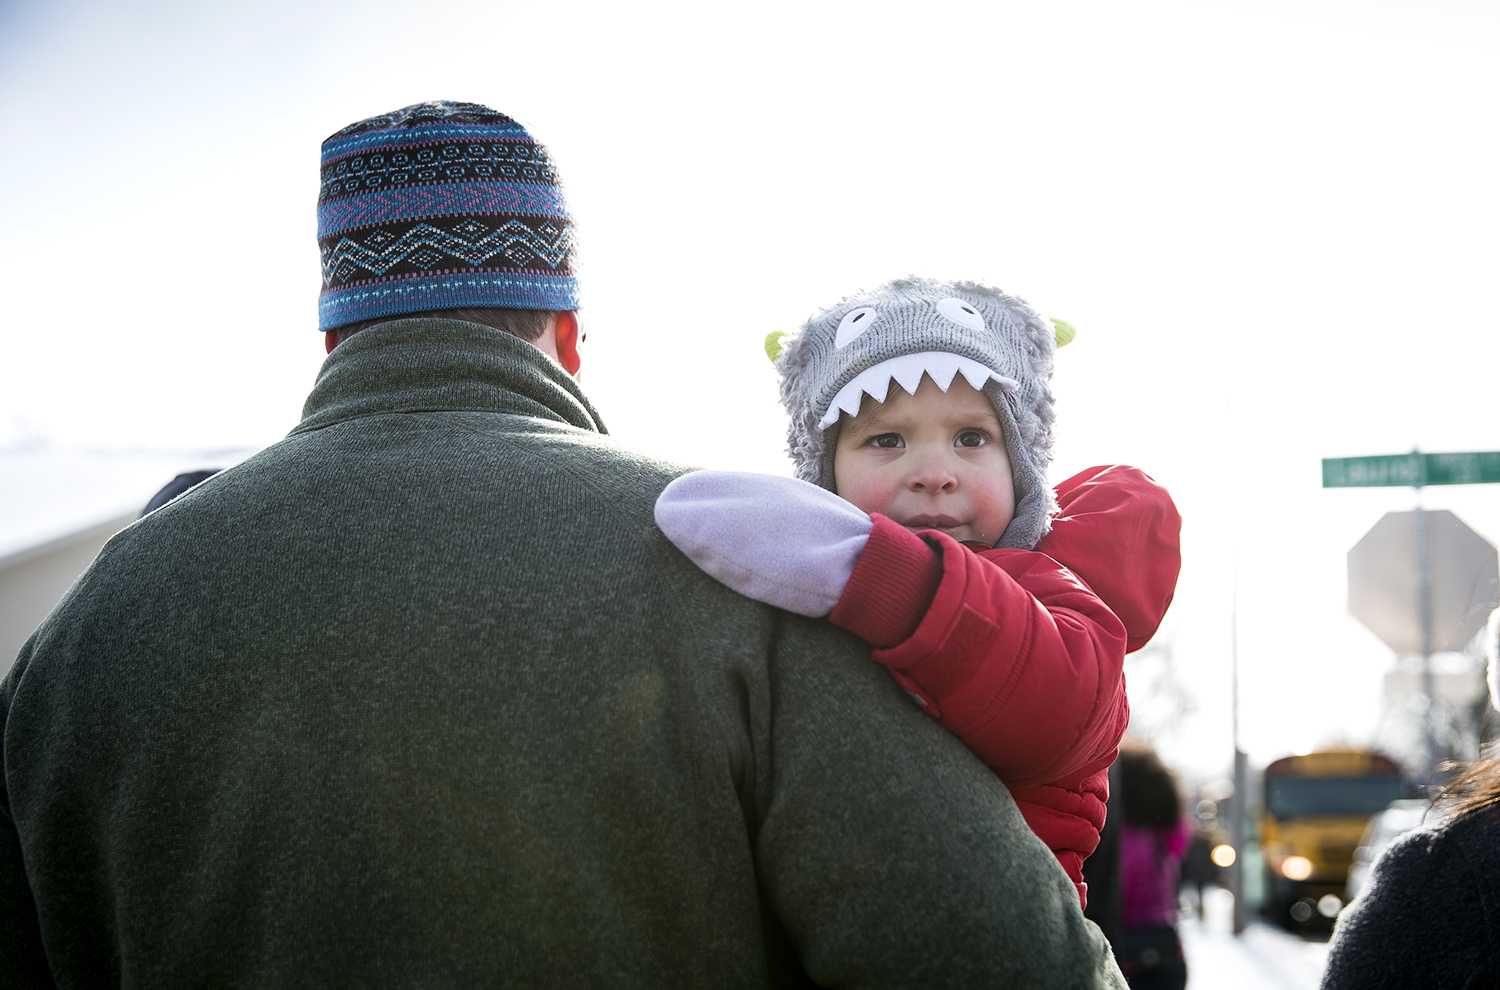 Pierson Coll, 2,who was participating in the Martin Luther King Jr. Unity March Monday, Jan. 15, 2018 with his father, Albert Coll, peers over his dad's shoulders at the starting point of the march at Pilgrim's Rest Baptist Church at Laurel and Martin Luther King Drive in Springfield, Ill. [Rich Saal/The State Journal-Register]